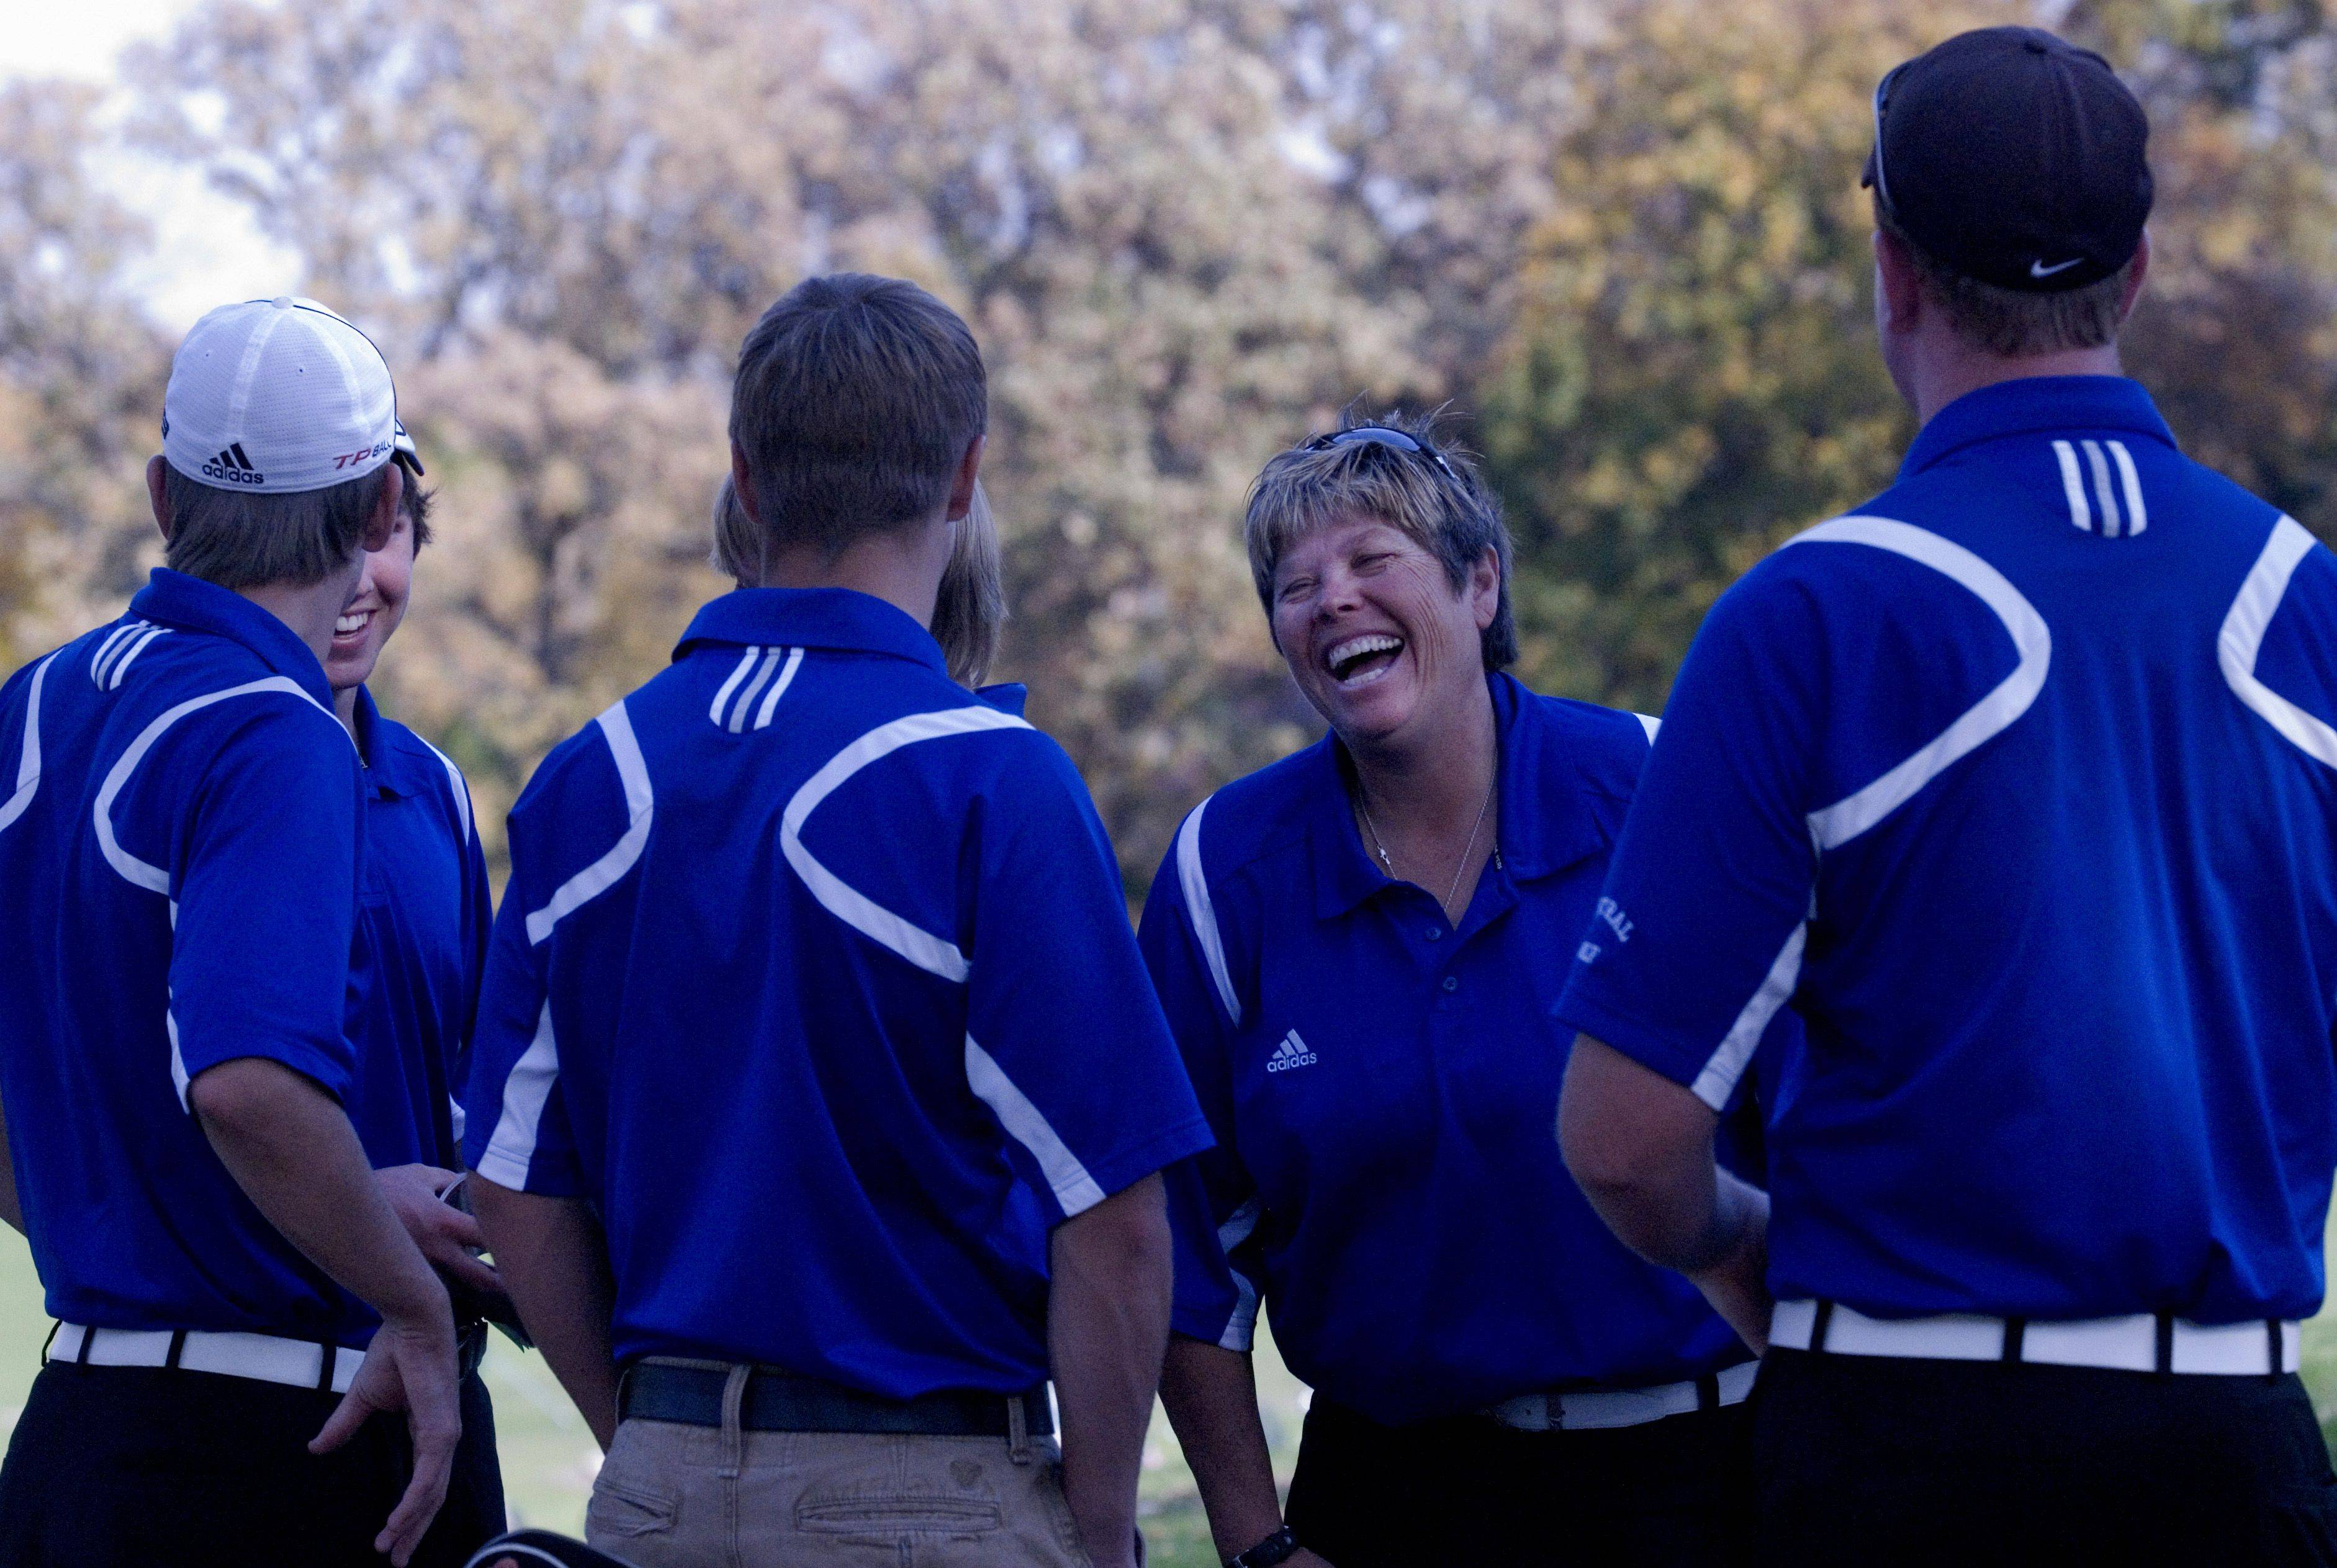 Coach Deb Twenhafel has waited 22 years for Burlington-Central High School?s boys golf team to qualify for the state tournament.